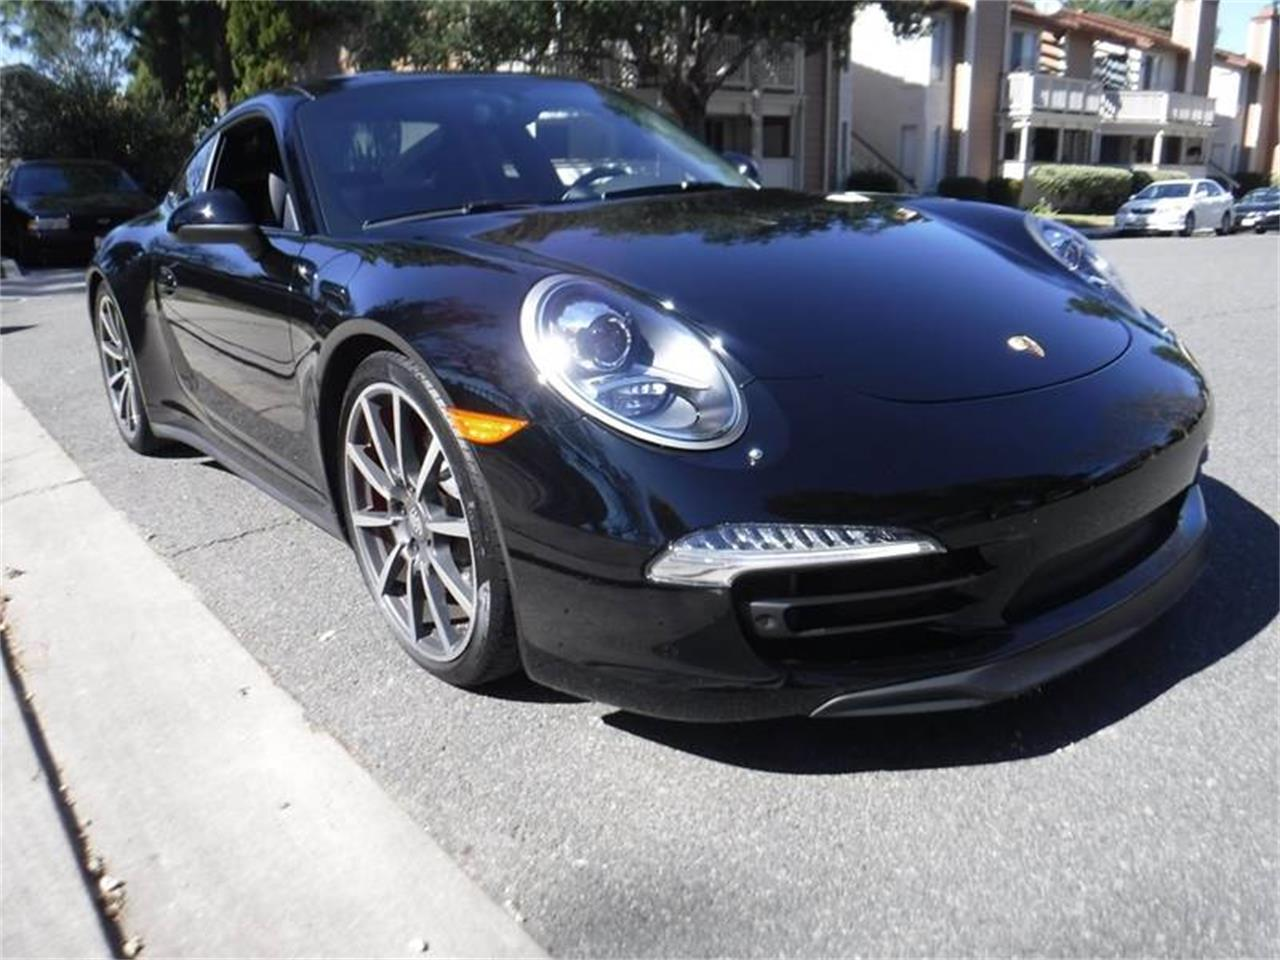 2015 Porsche 911 for sale in Thousand Oaks, CA – photo 2